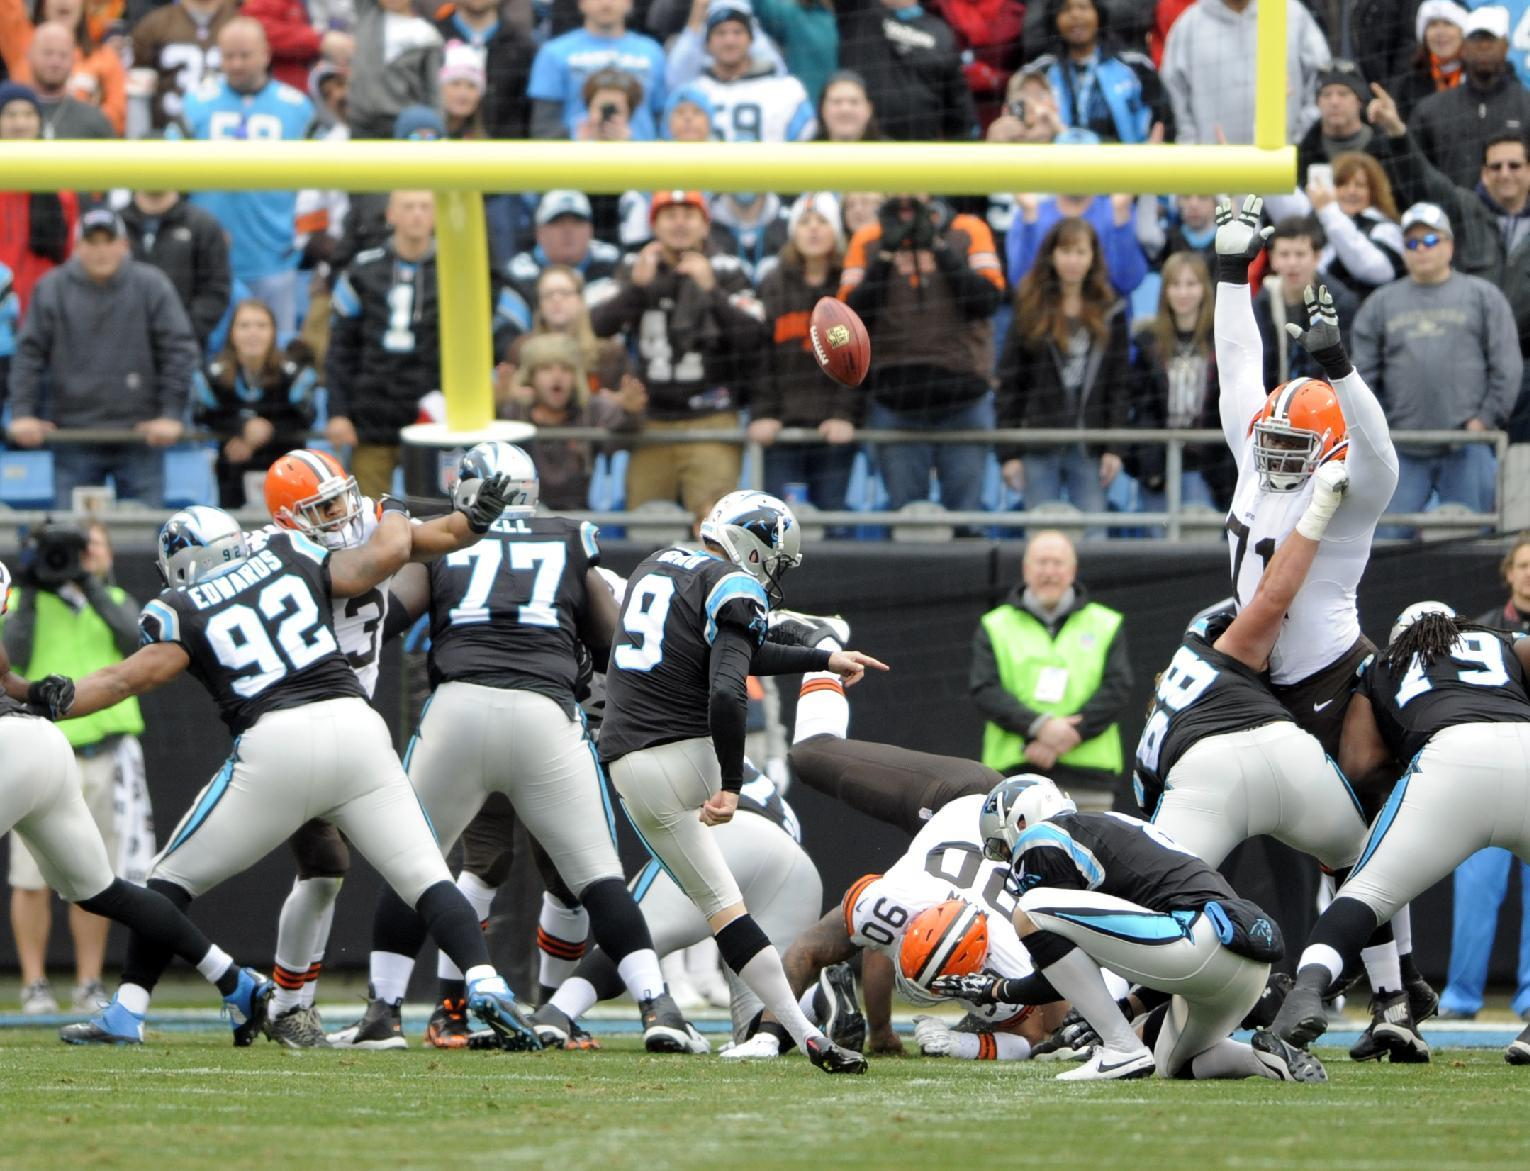 Gano eager for another chance vs. Falcons